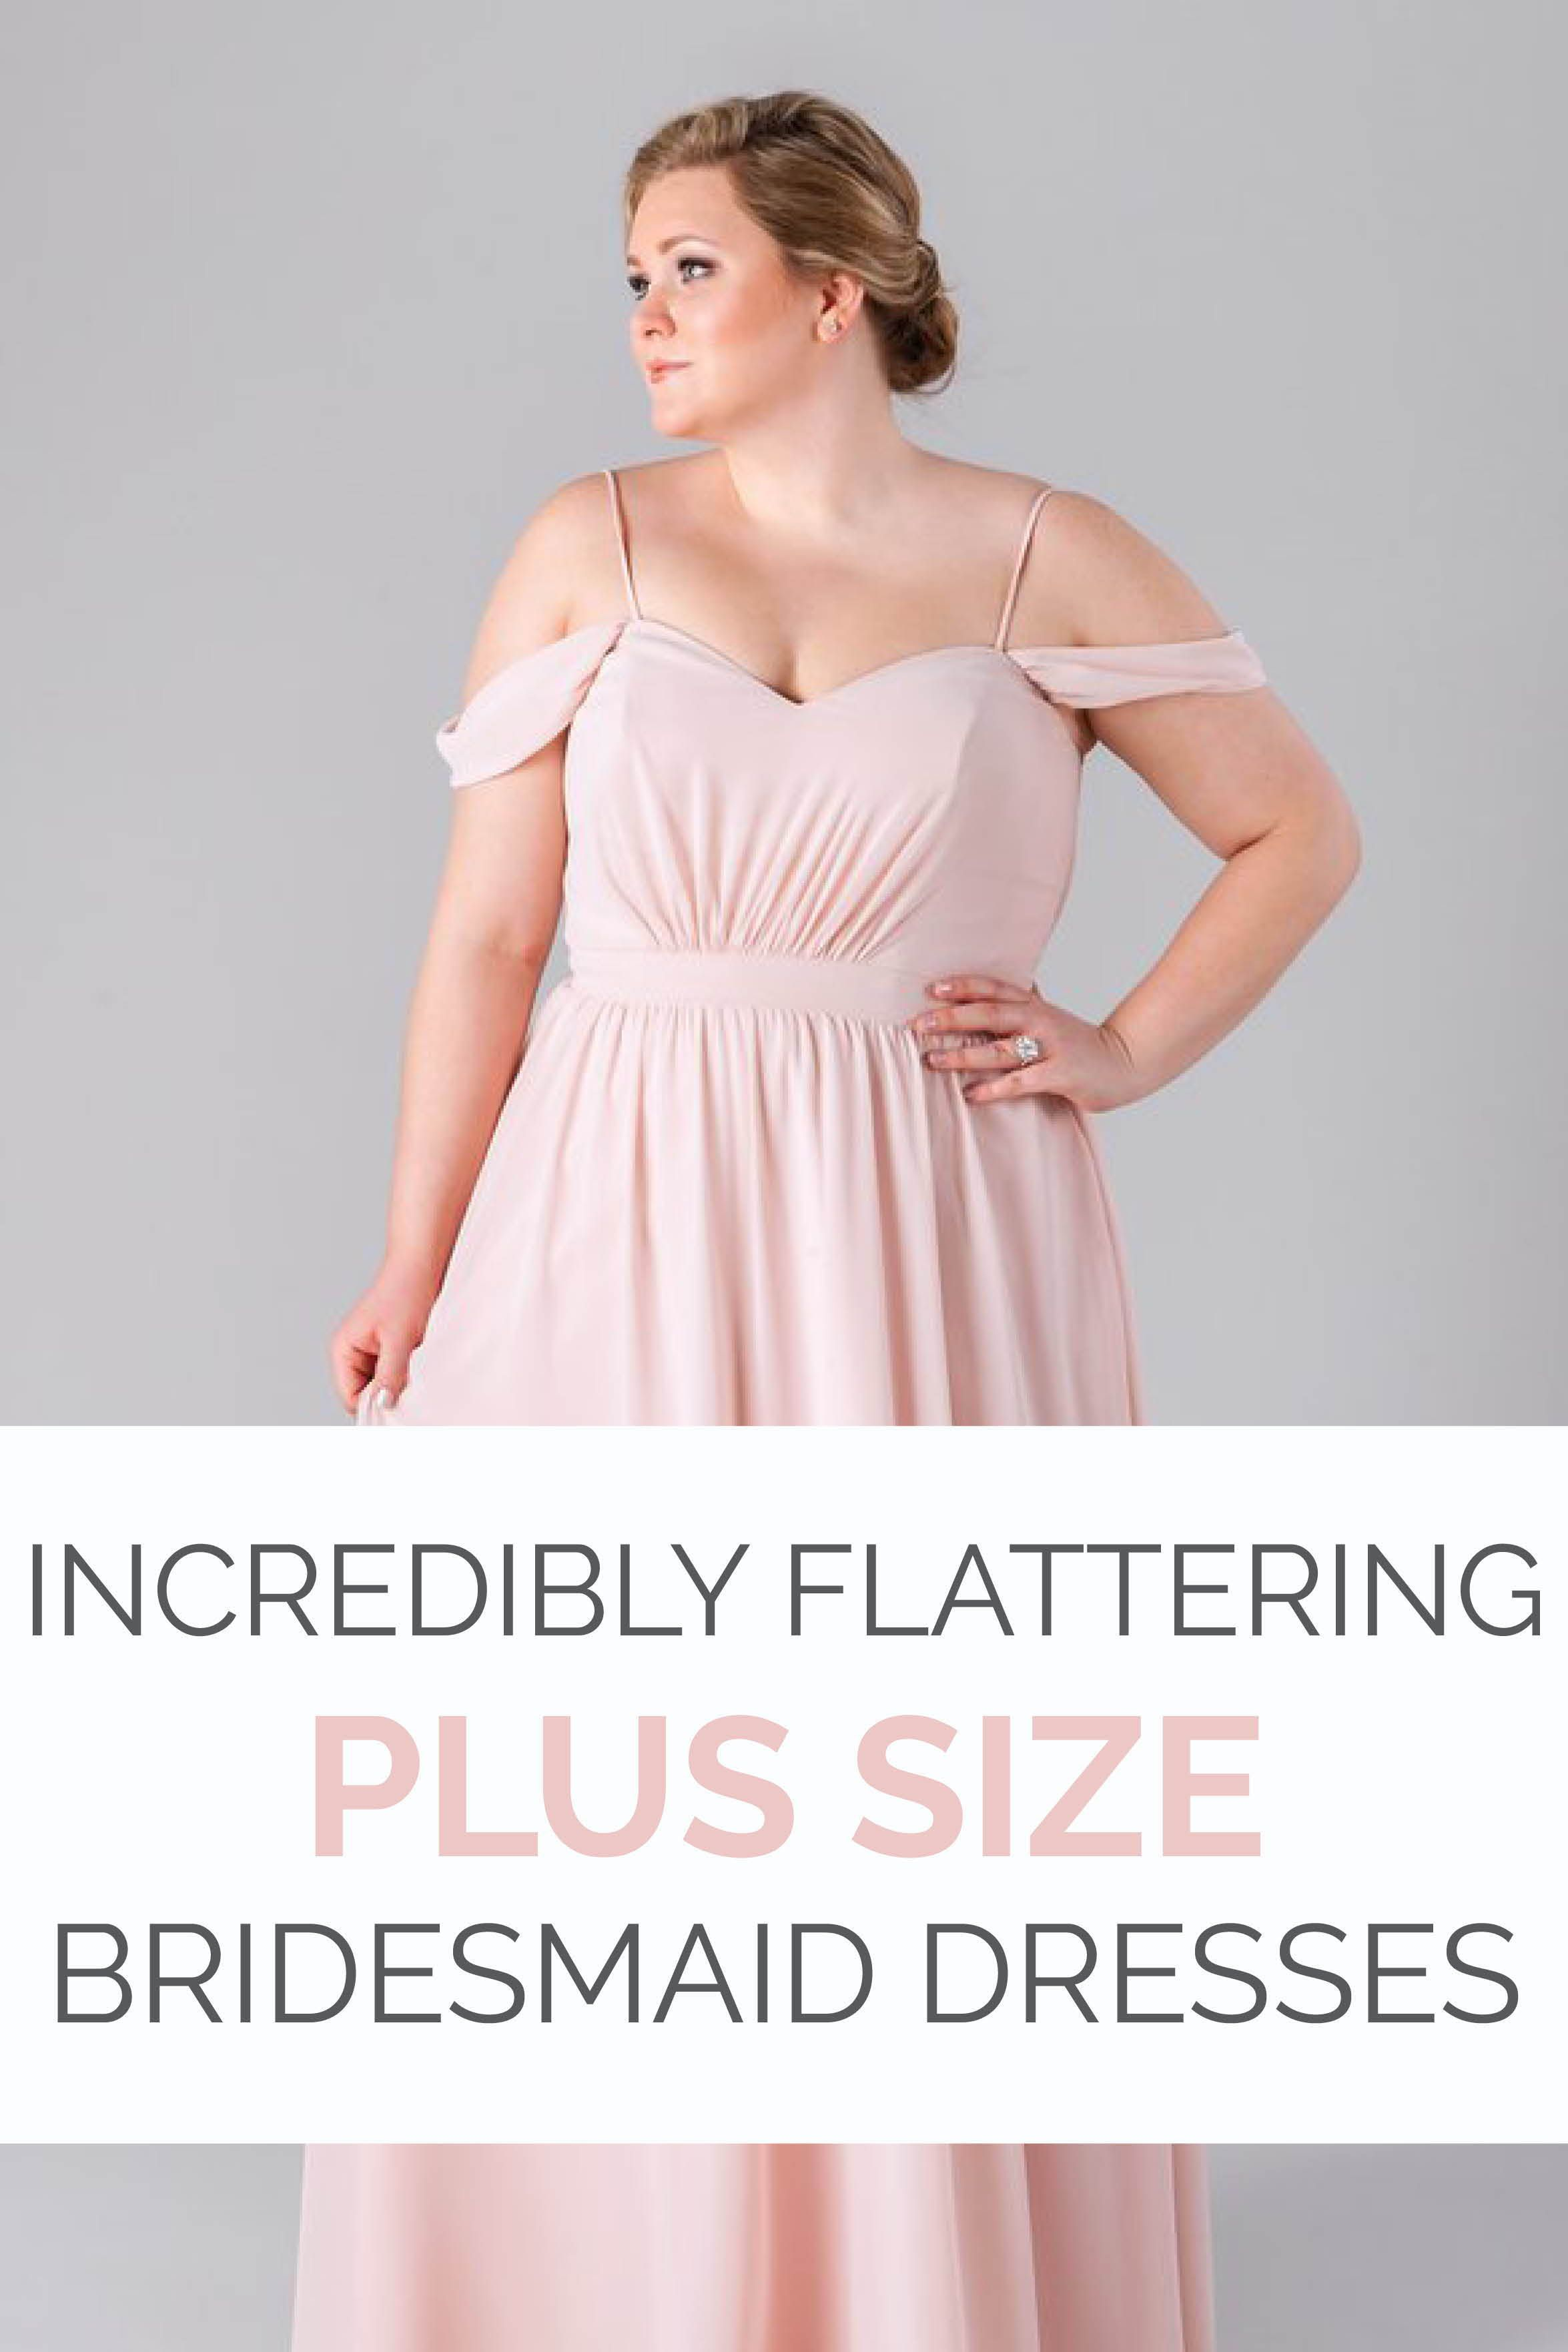 Incredibly flattering plus size bridesmaid dresses kennedy blue